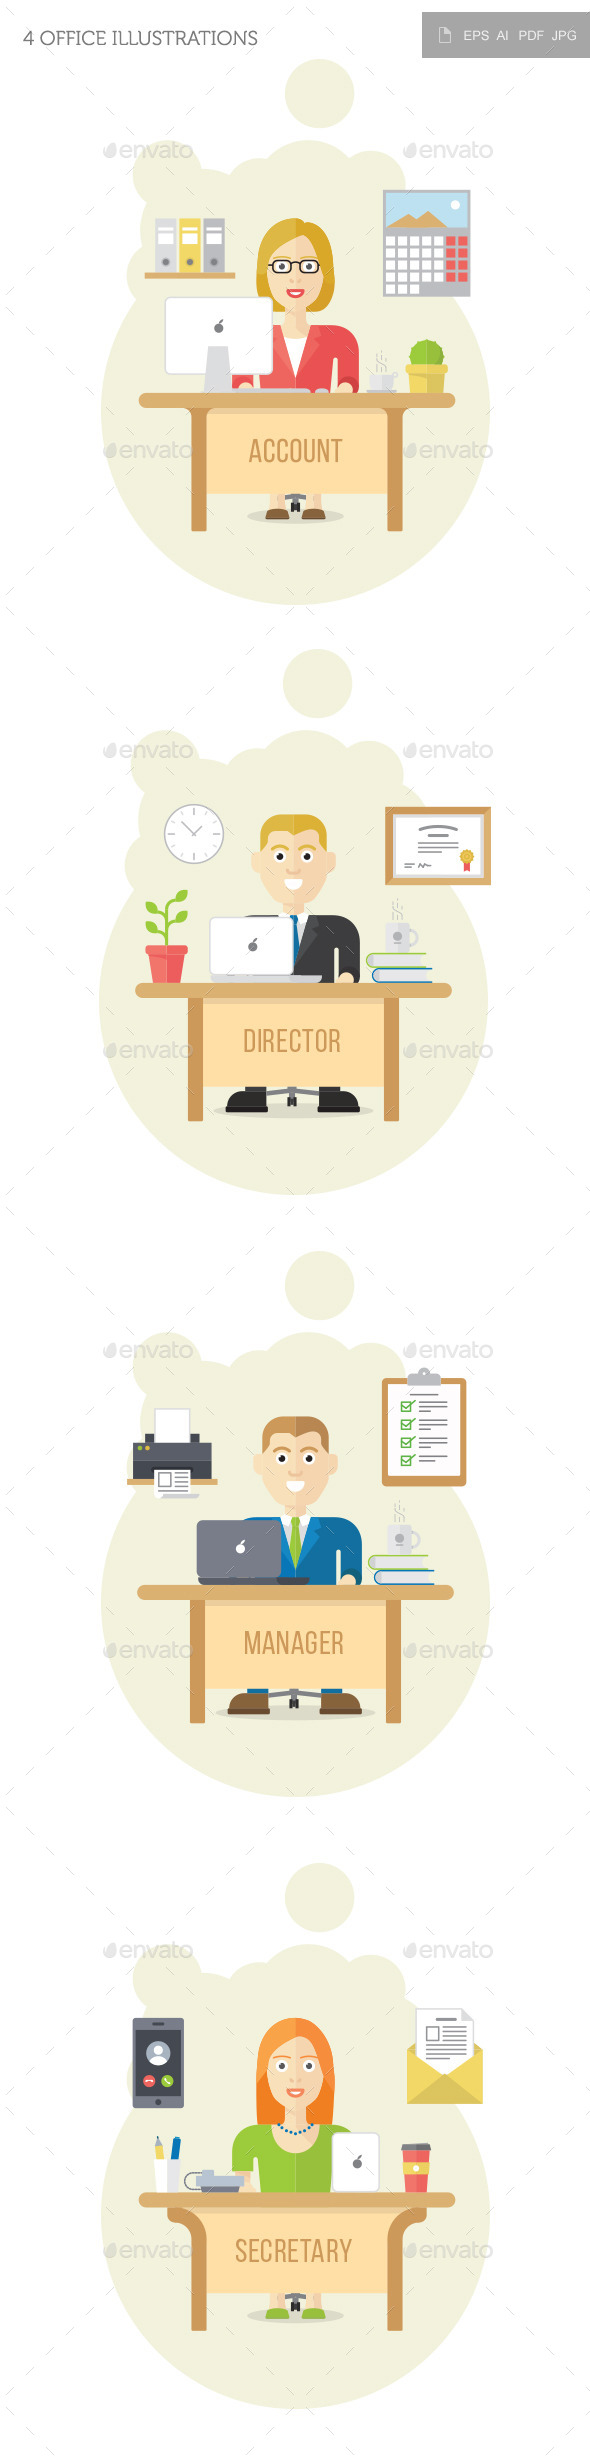 4 Office Illustrations - Backgrounds Business